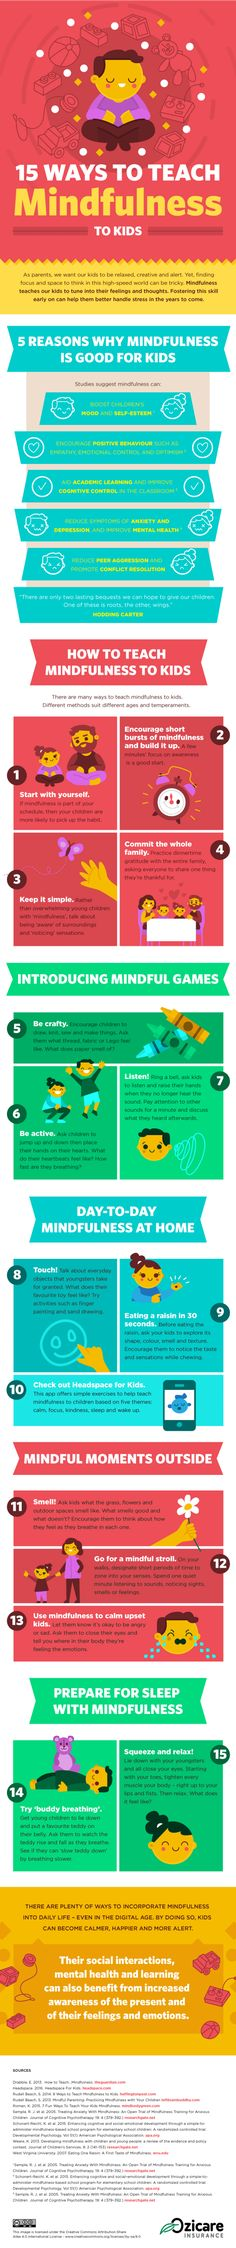 15 Ways to Teach Mindfulness and Patience to Children